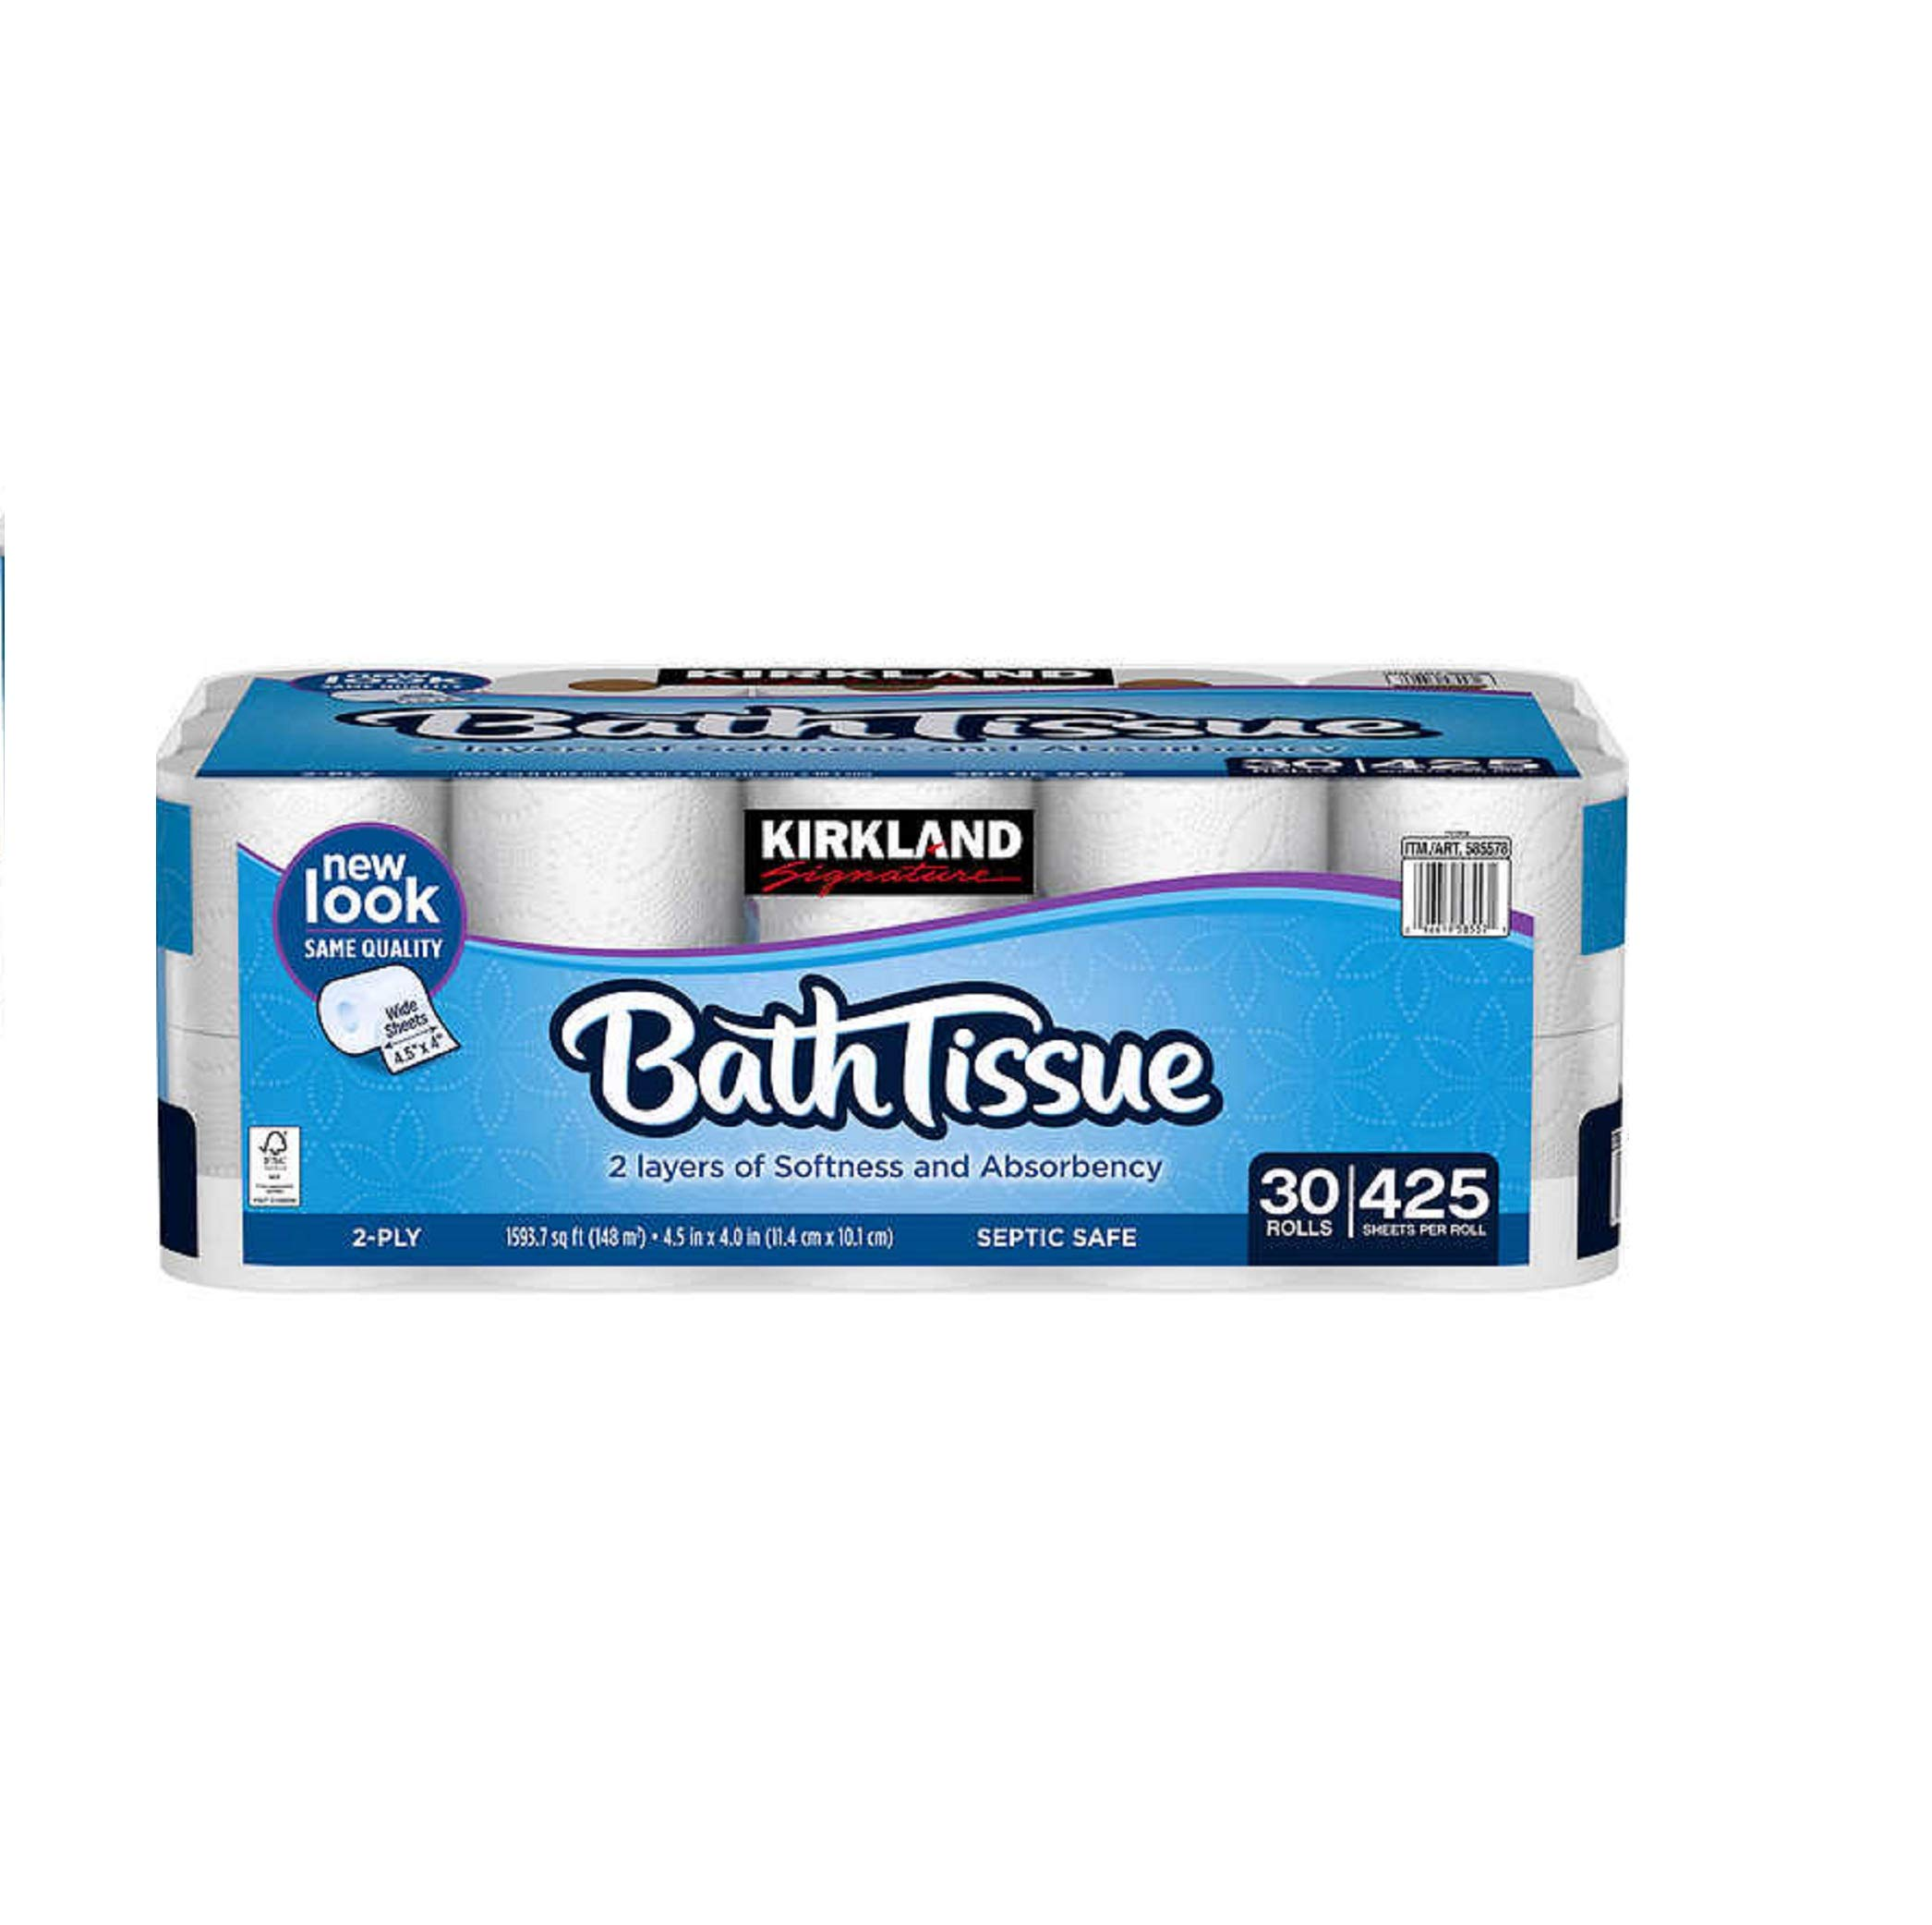 Kirkland Signature Bath Tissue, 2-Ply, 425, 2 Pack (30 count)